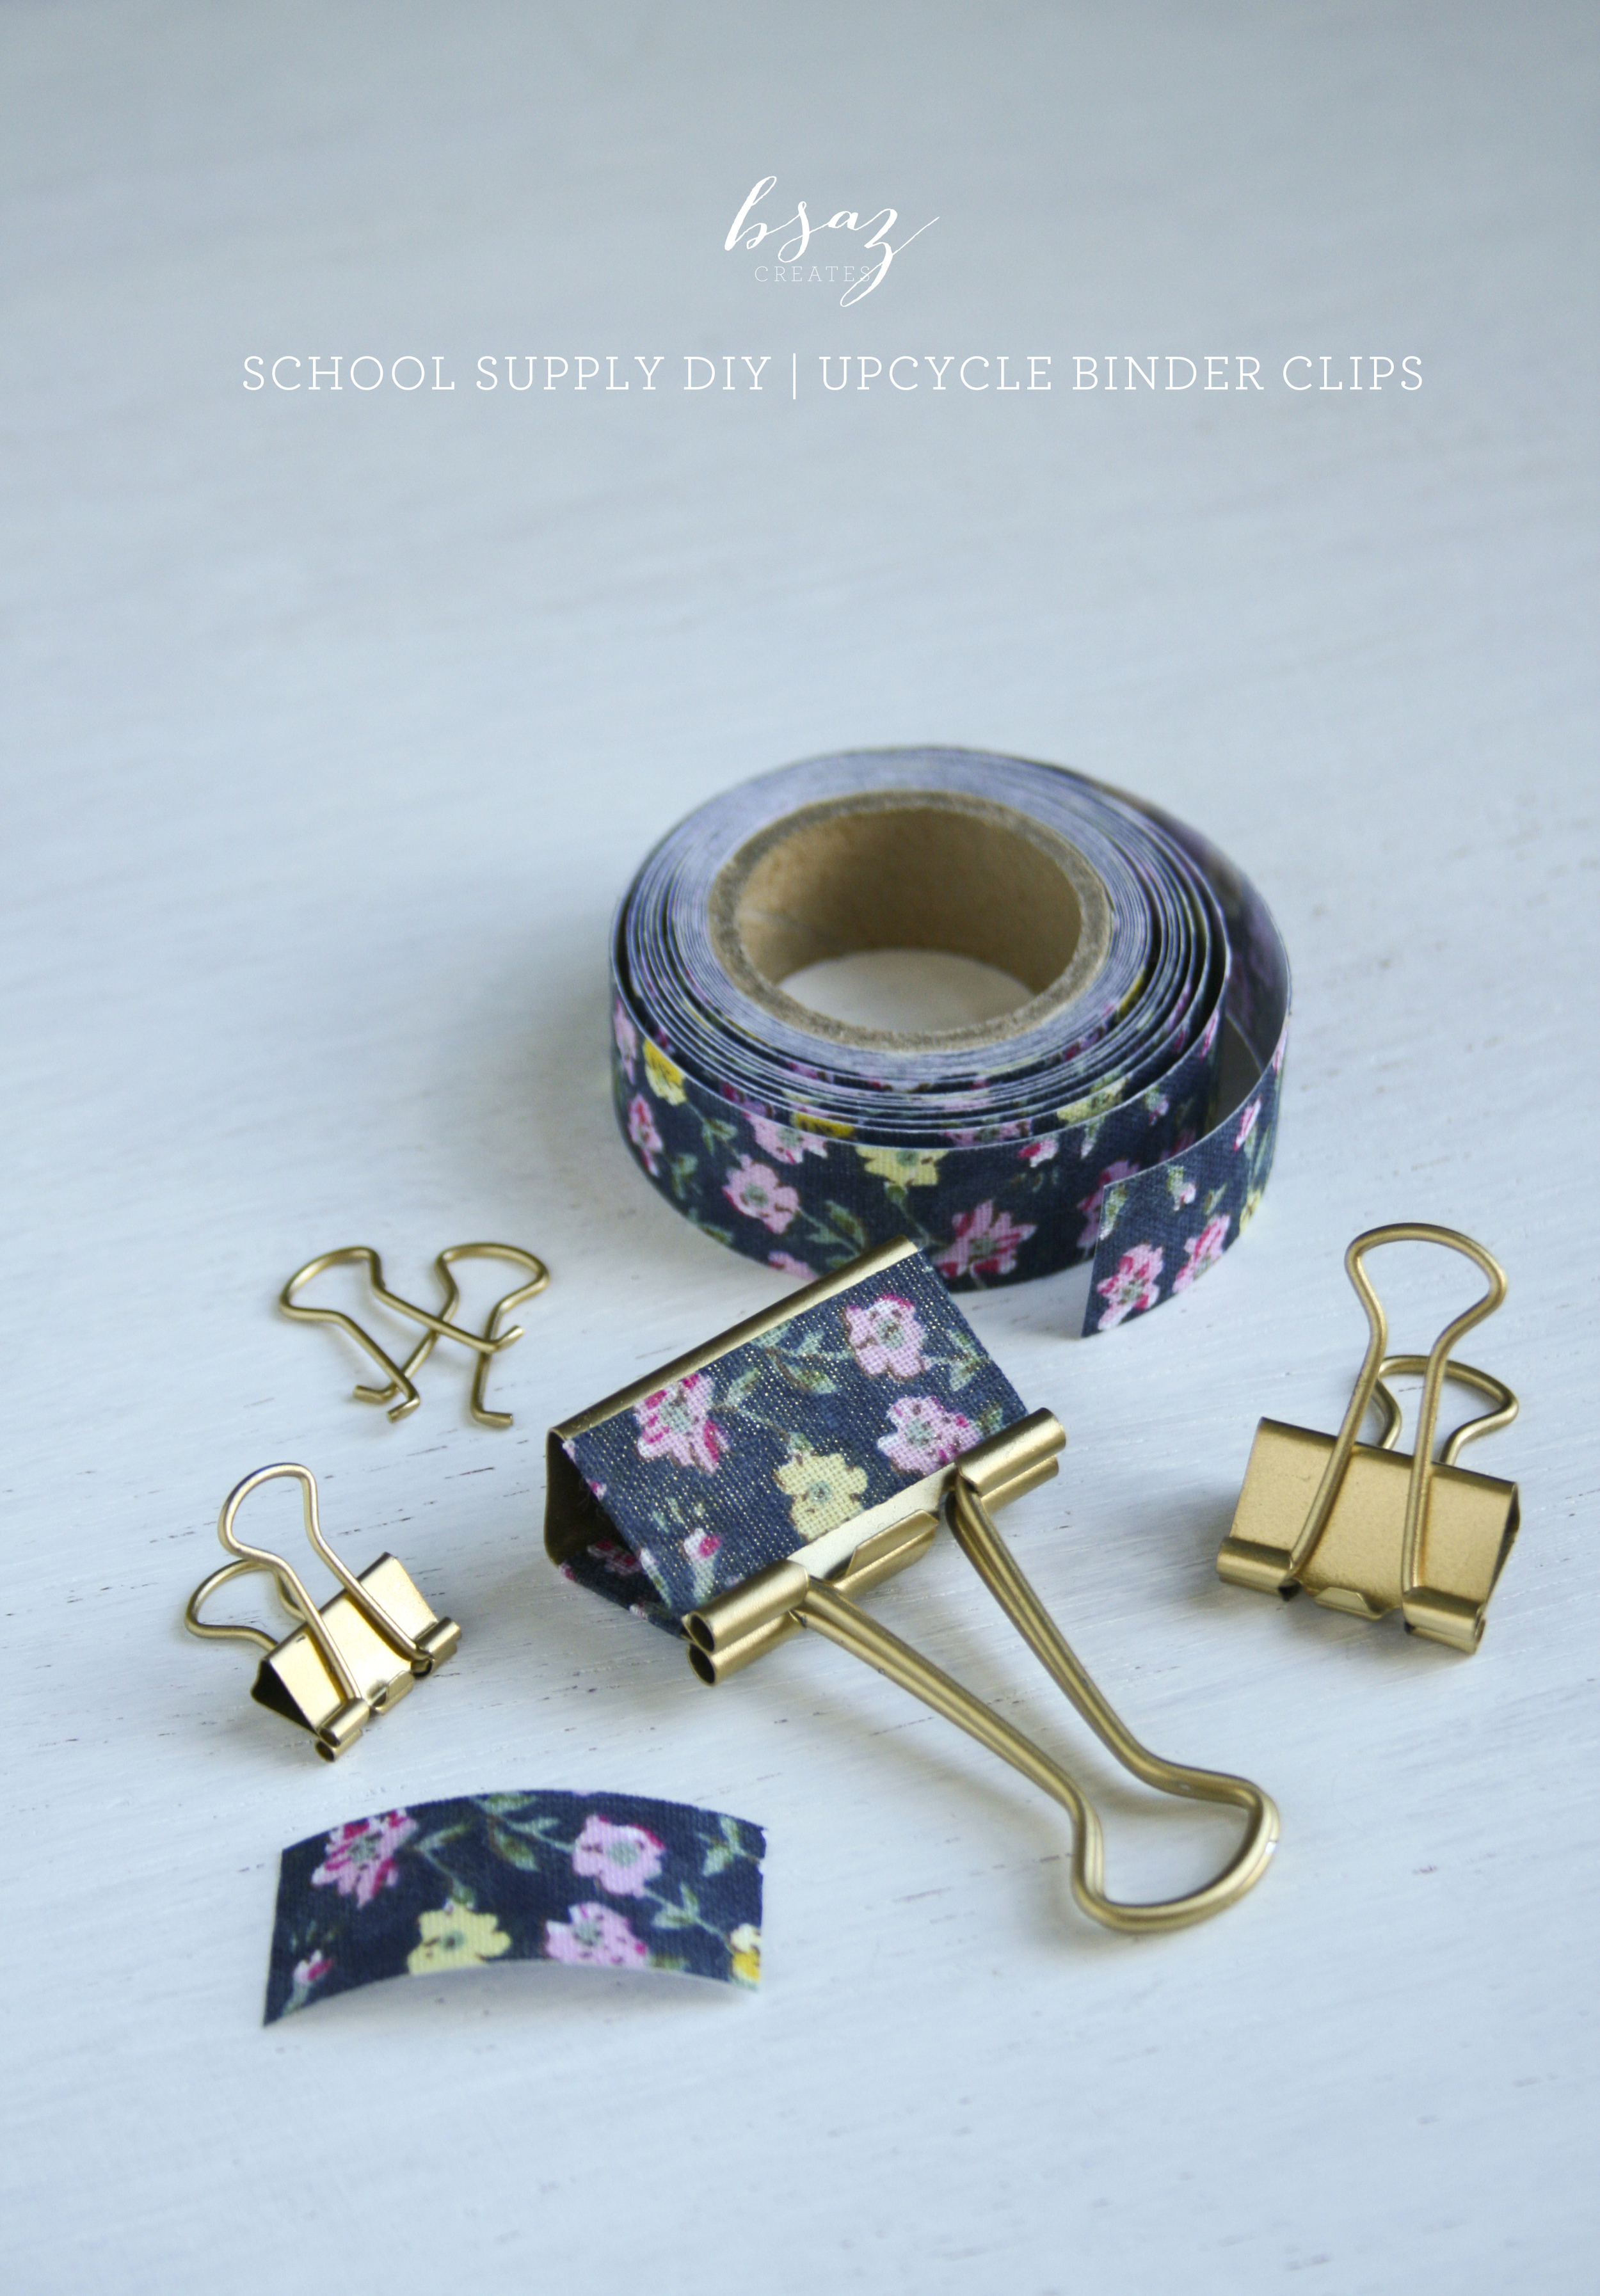 BSAZ CREATES | SCHOOL SUPPLY DIY | UPCYCLE BINDER CLIPS